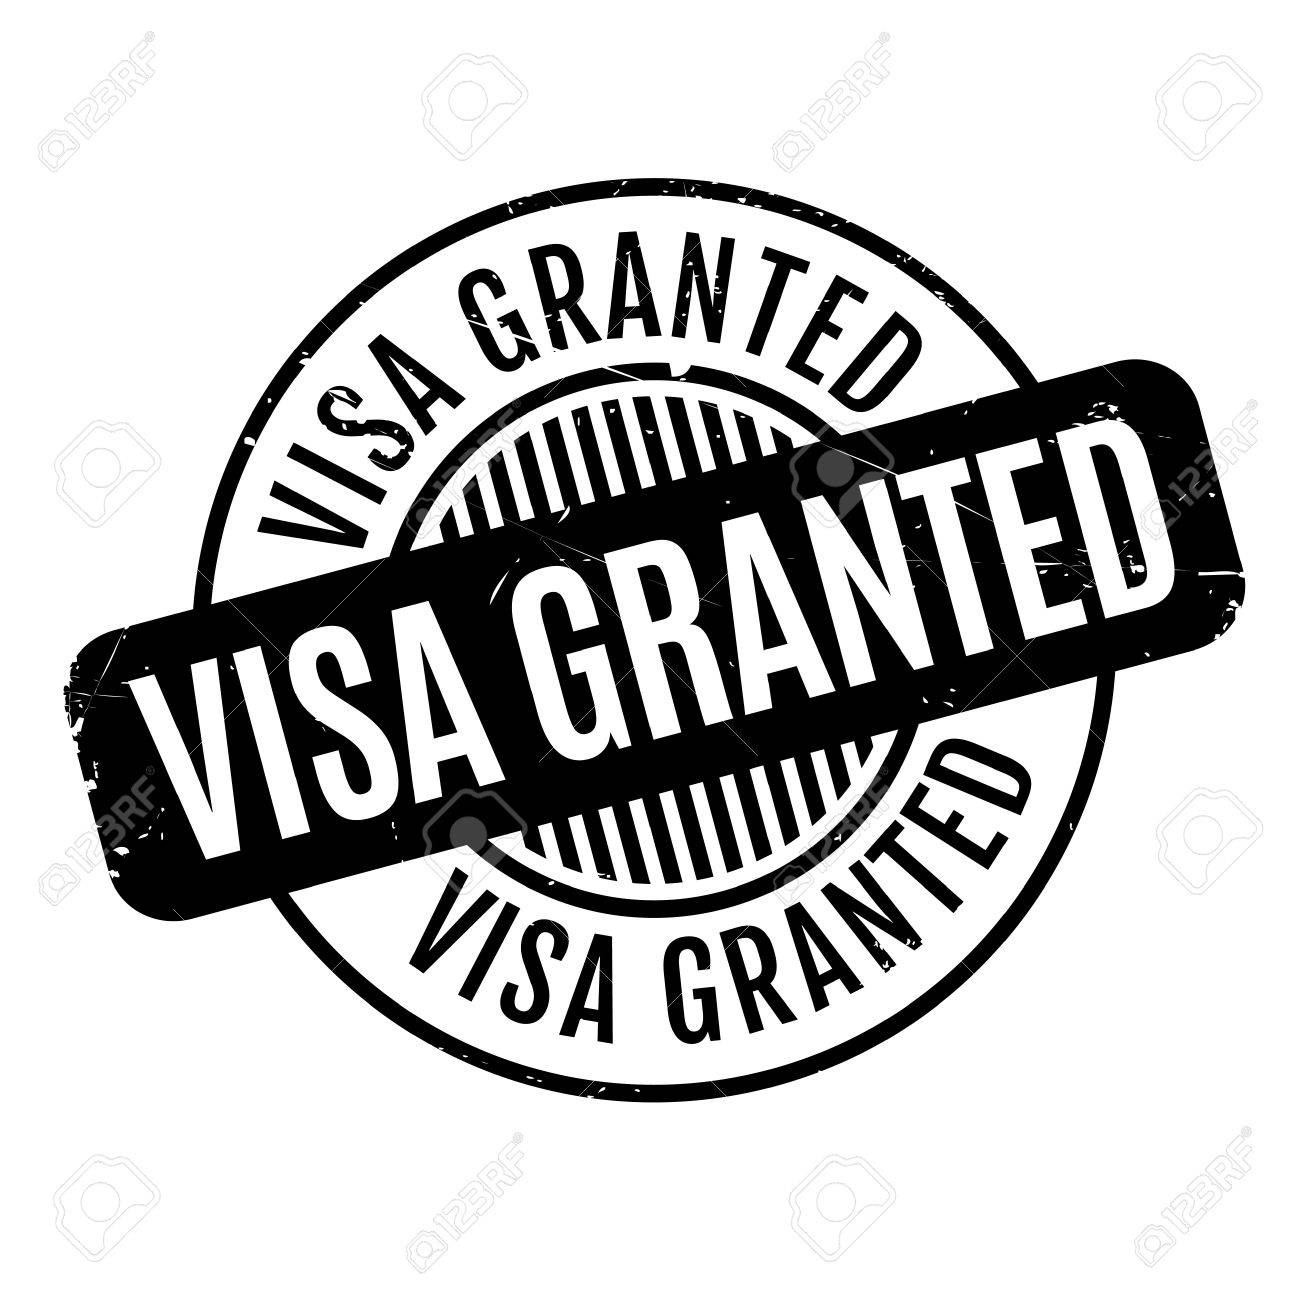 Visa granted rubber stamp grunge design with dust scratches visa granted rubber stamp grunge design with dust scratches effects can be easily removed biocorpaavc Choice Image